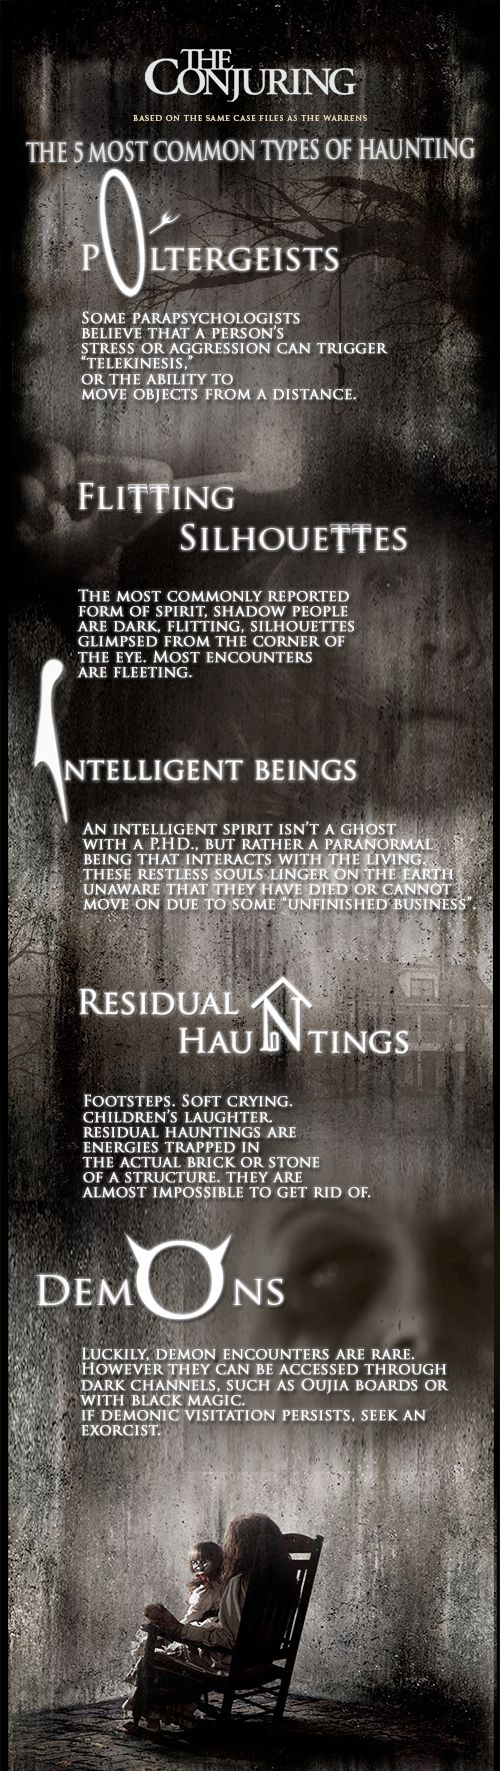 The Conjuring (2013) The 5 Most Common Types of Hauntings